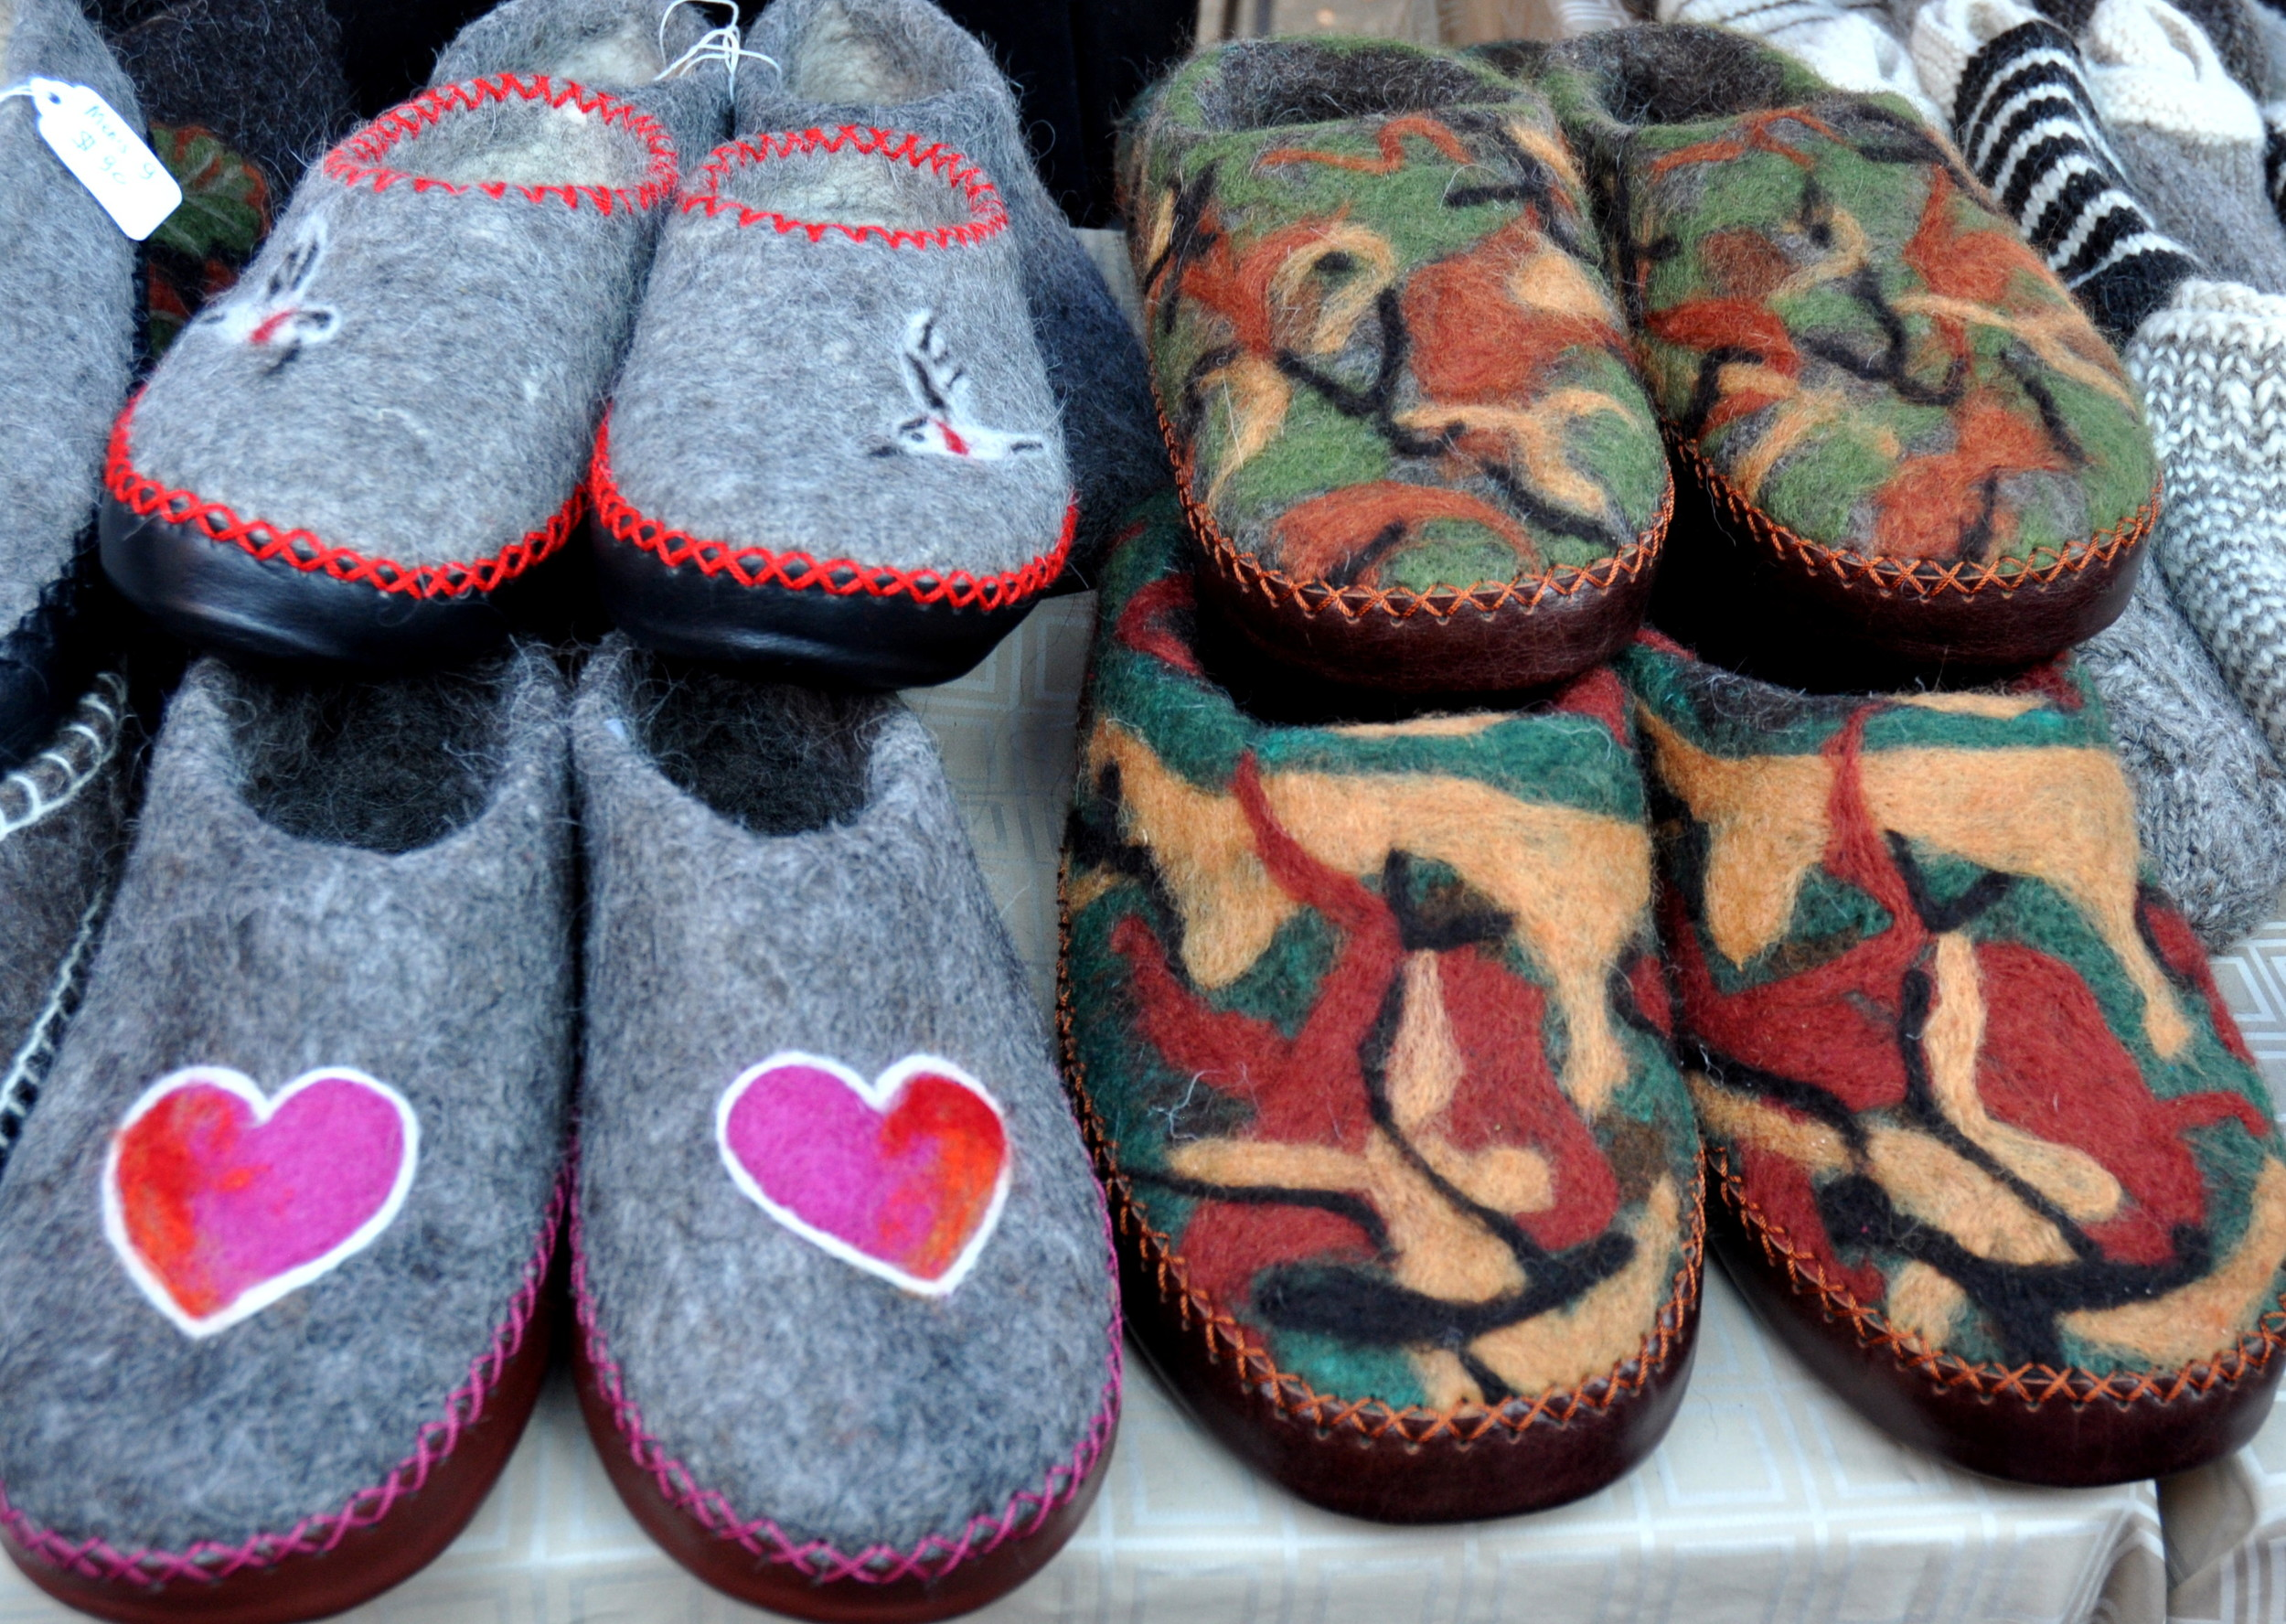 Felted wool slippers from Wonderful Wool at Ballard Farmers Market. Copyright Zachary D. Lyons.